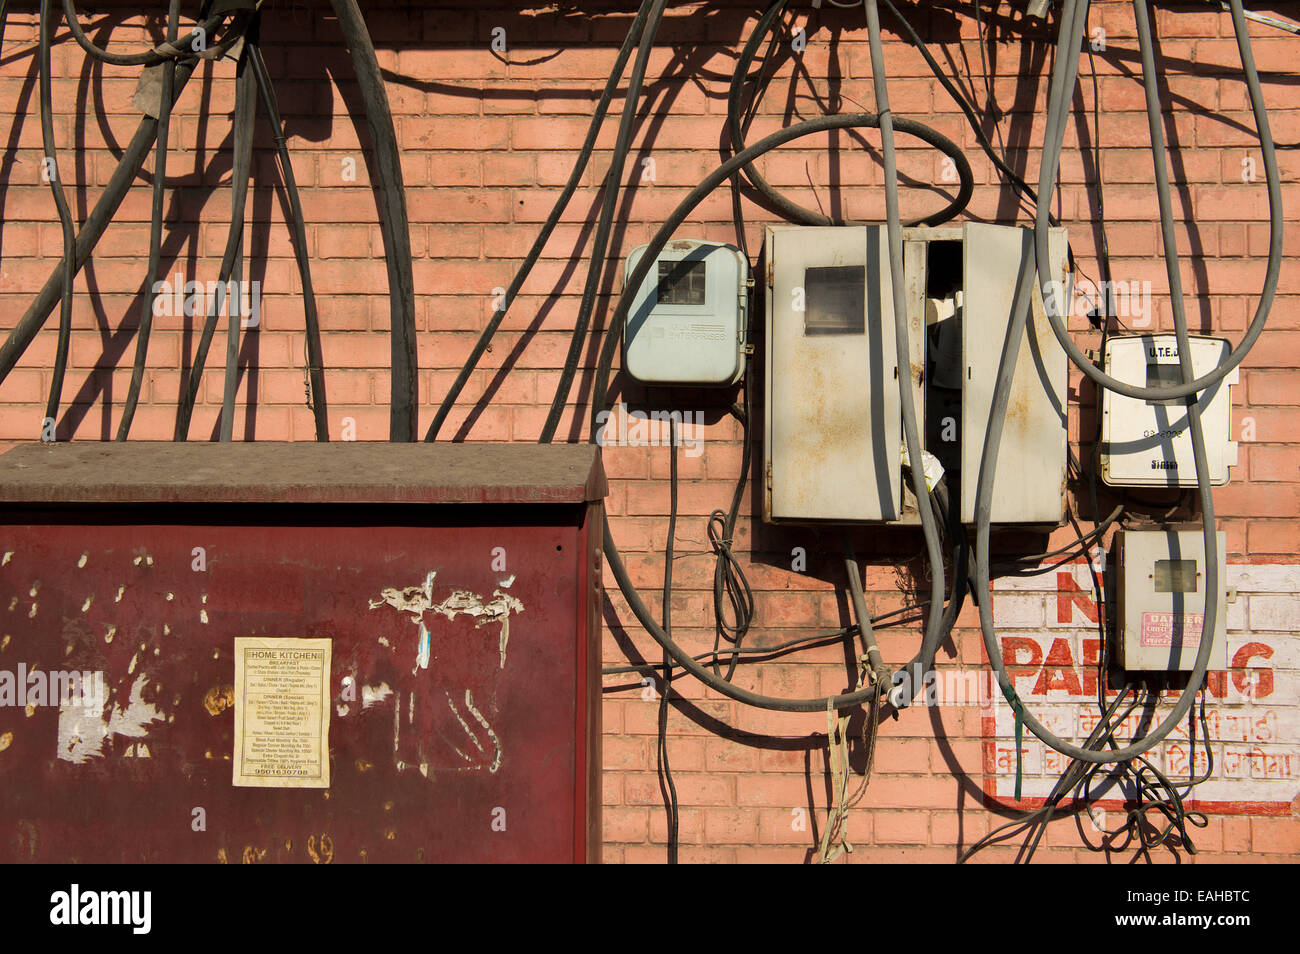 A jumble of wires - Stock Image